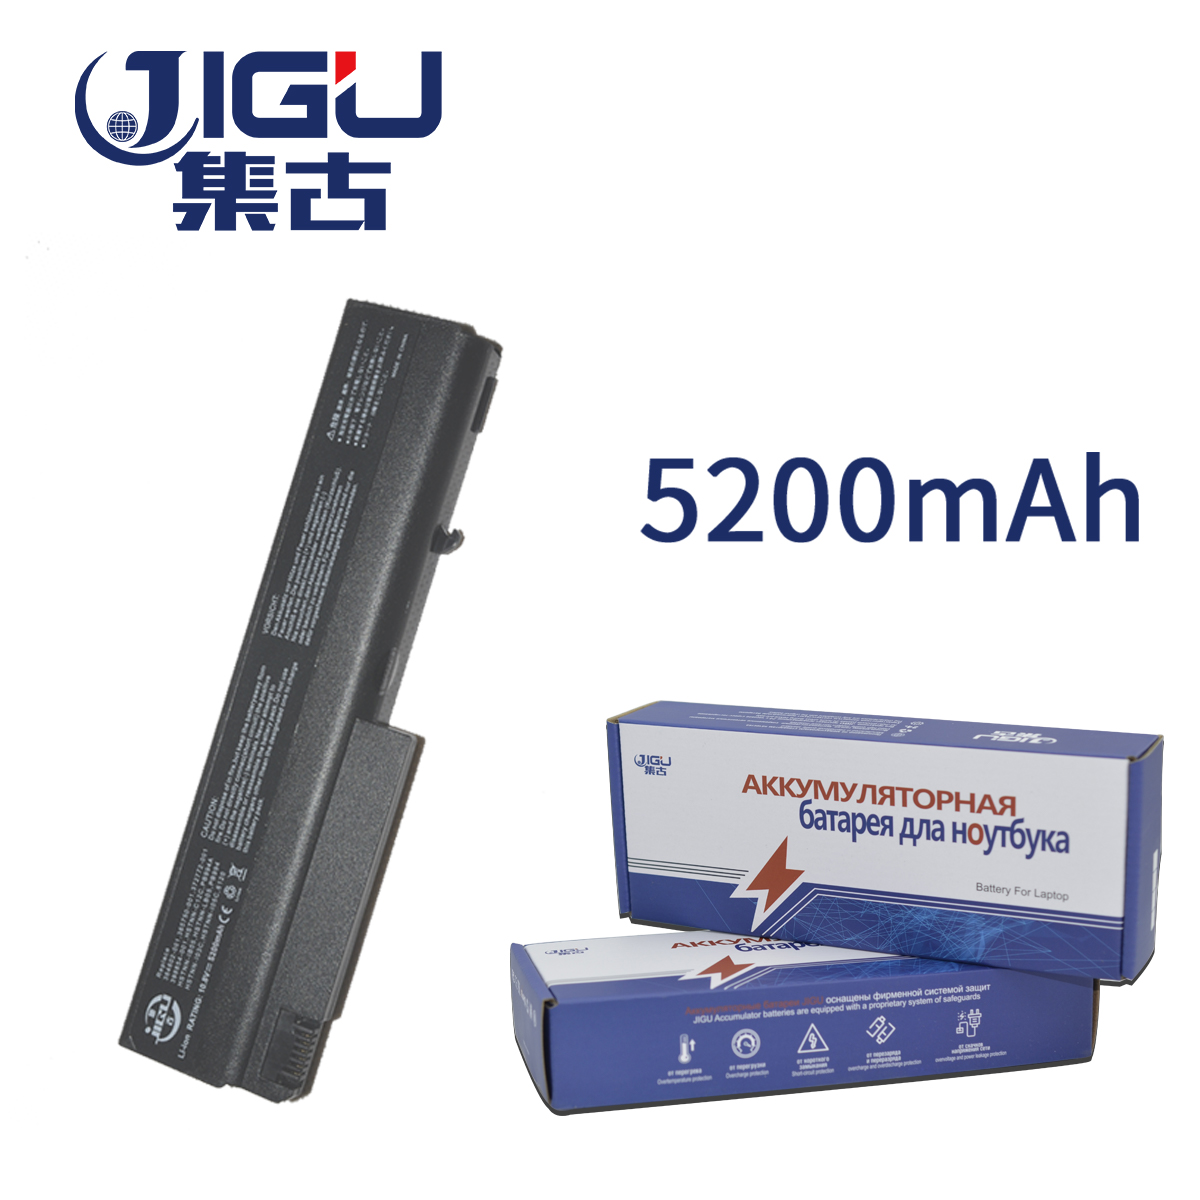 JIGU Laptop Battery FOR Hp Compaq Business Notebook Nc6320 NX5100 NX6100 Nx6300 NX6310 NX6315 NX6325 Nx6330 NX6320/CT mz радиоуправляемая модель lamborghini reventon mz 2028k